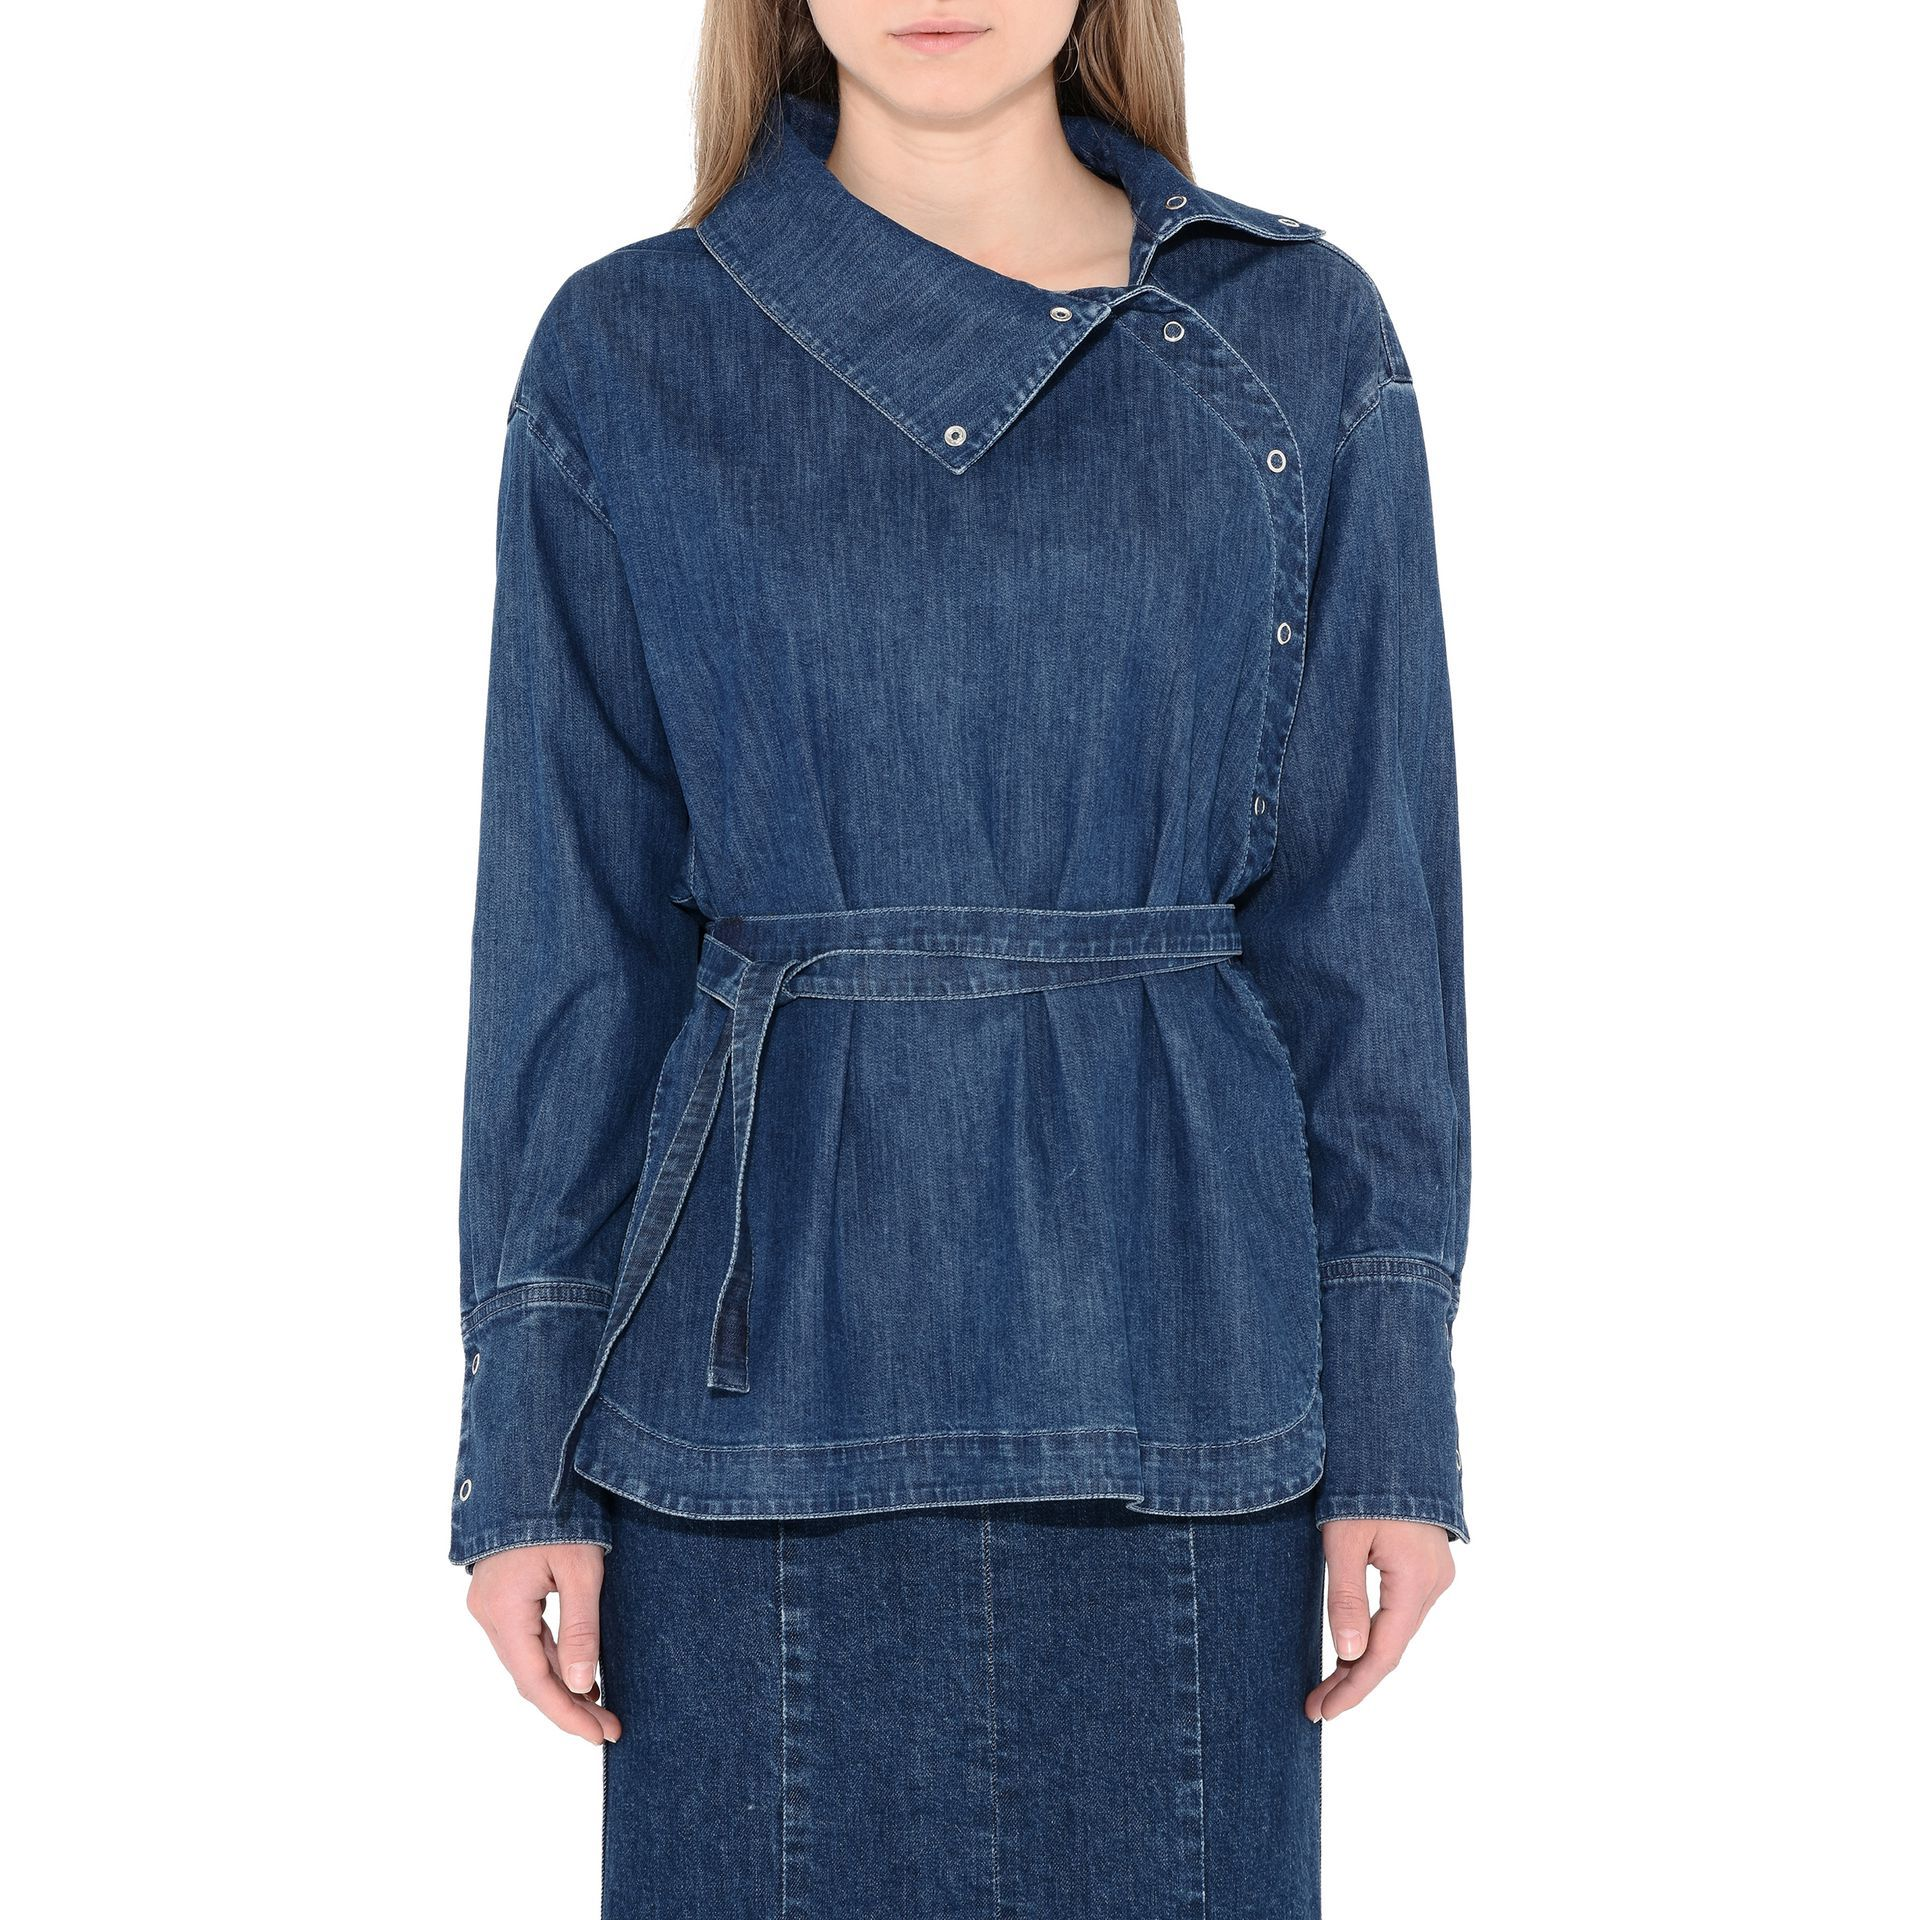 b1549dbc5c Denim Wrap Shirt - STELLA MCCARTNEY